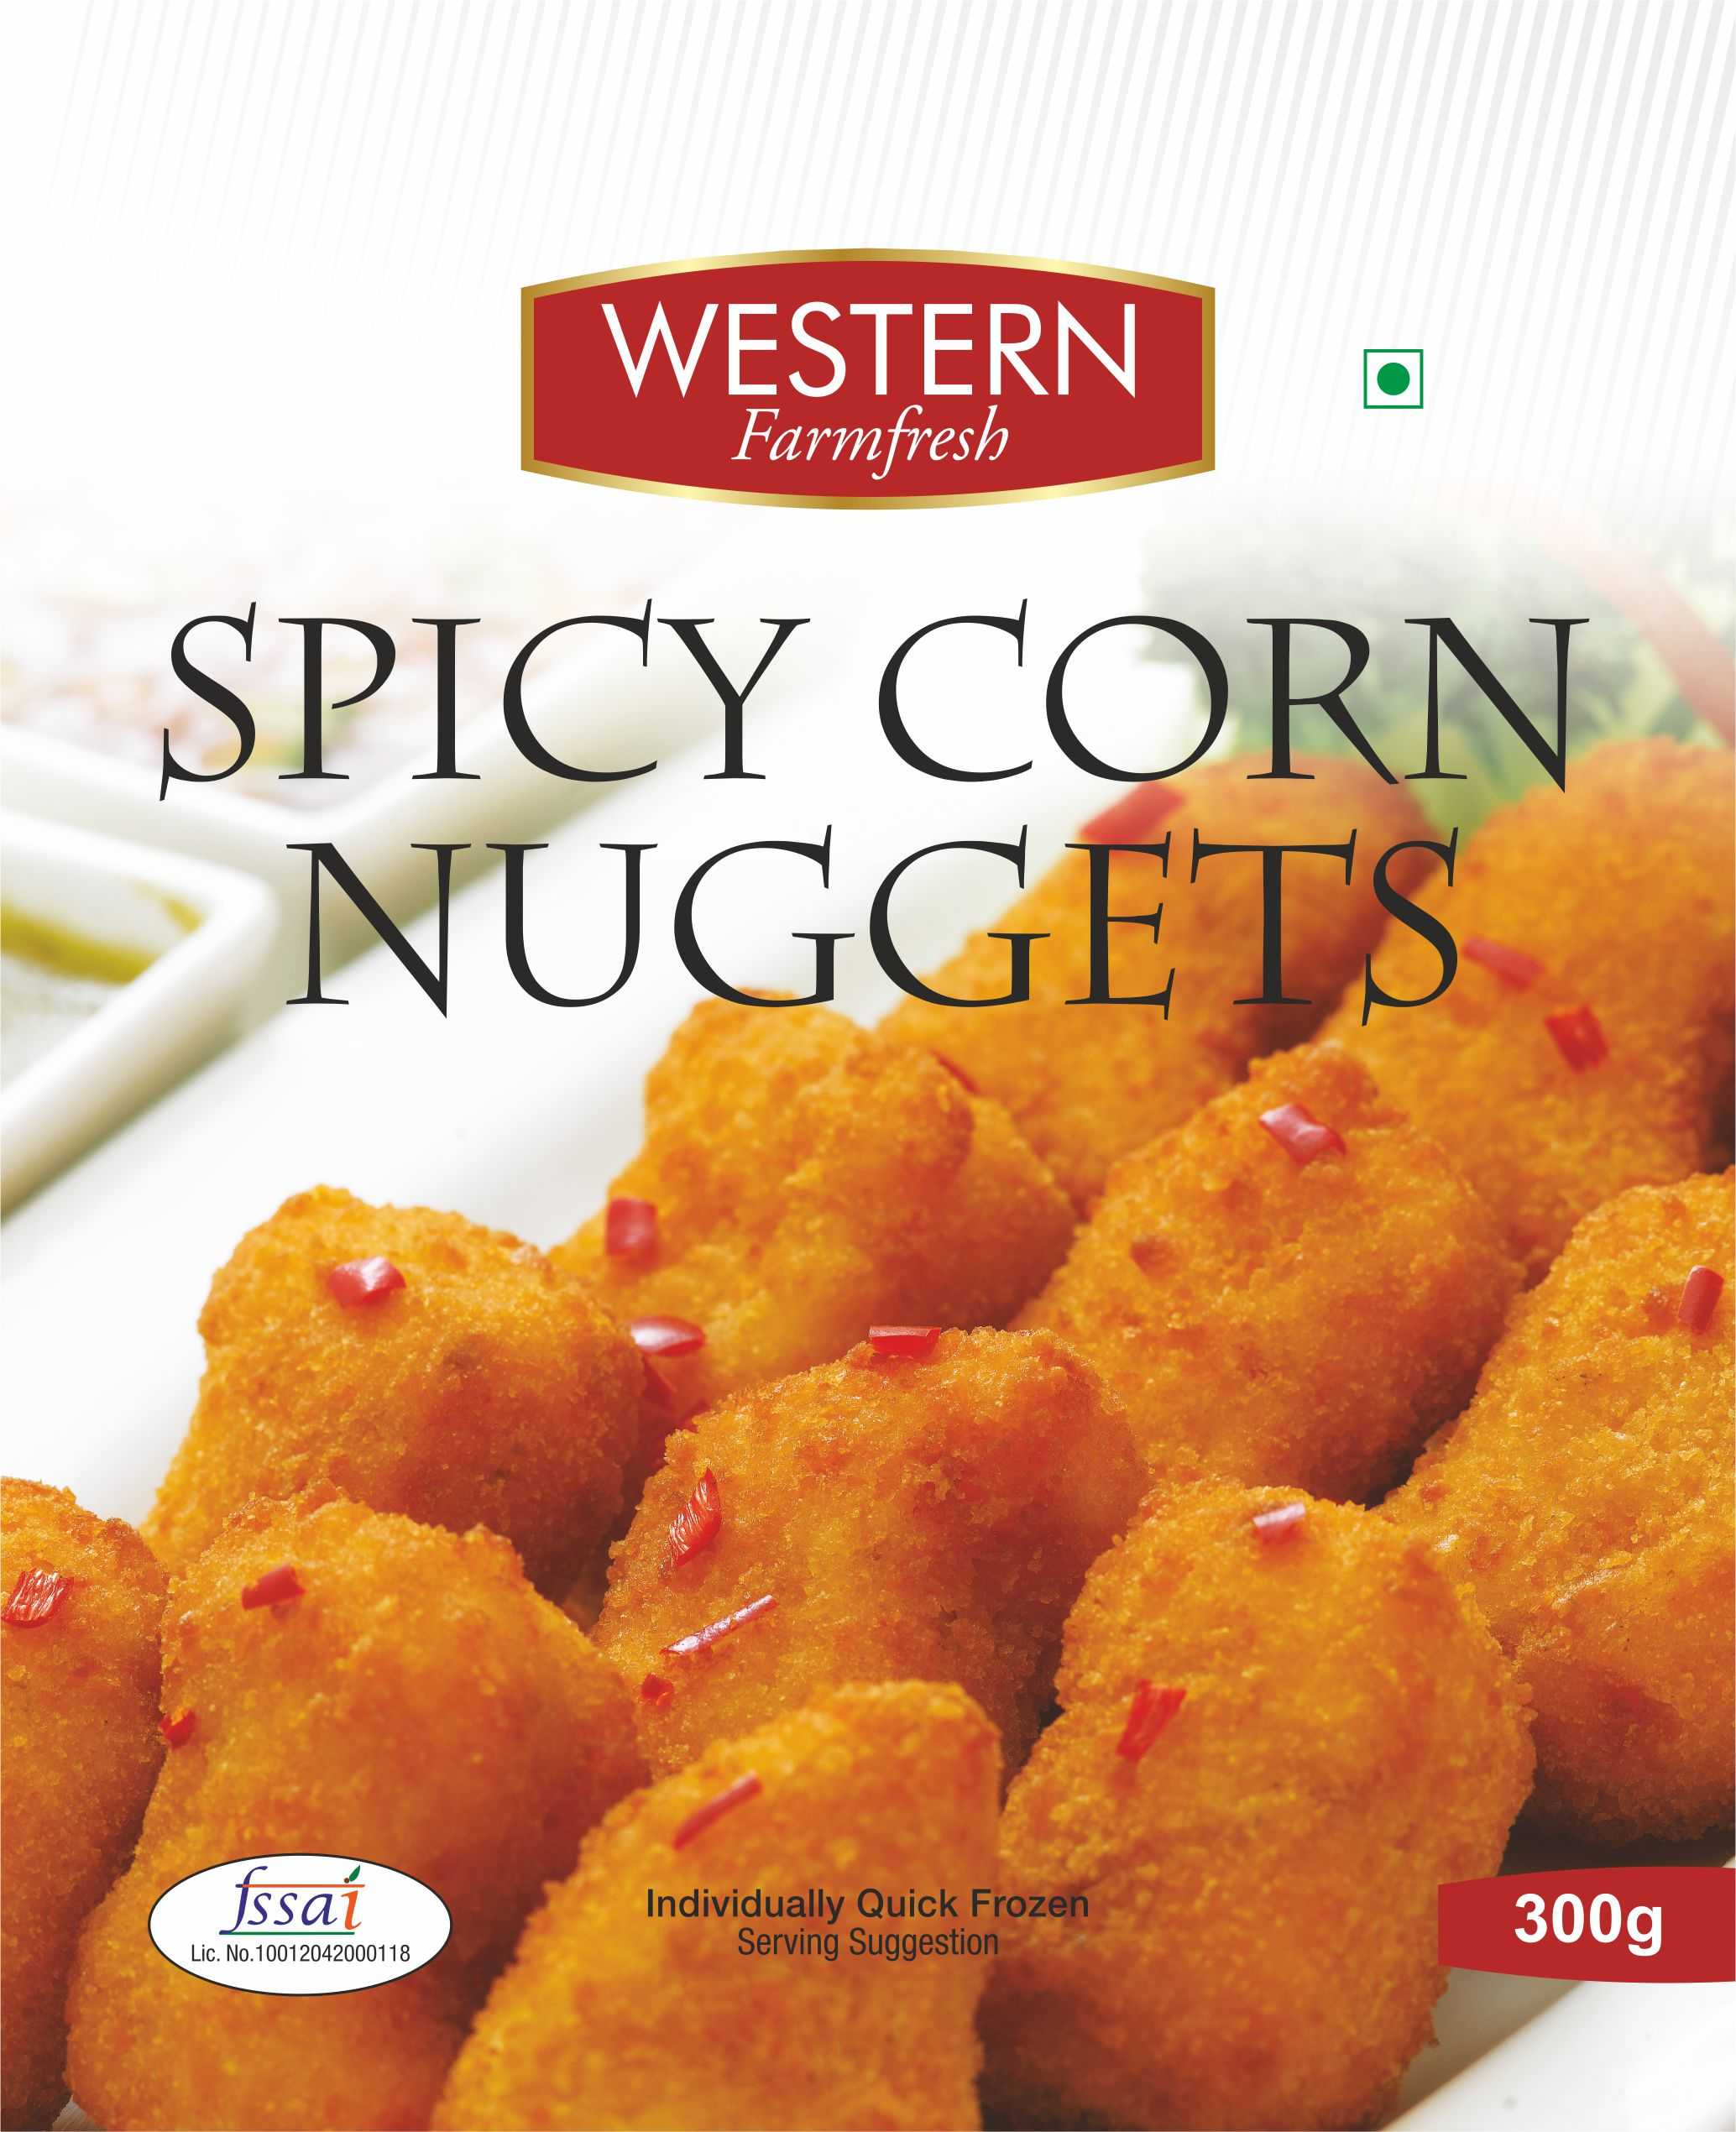 Spicy Corn Nuggets